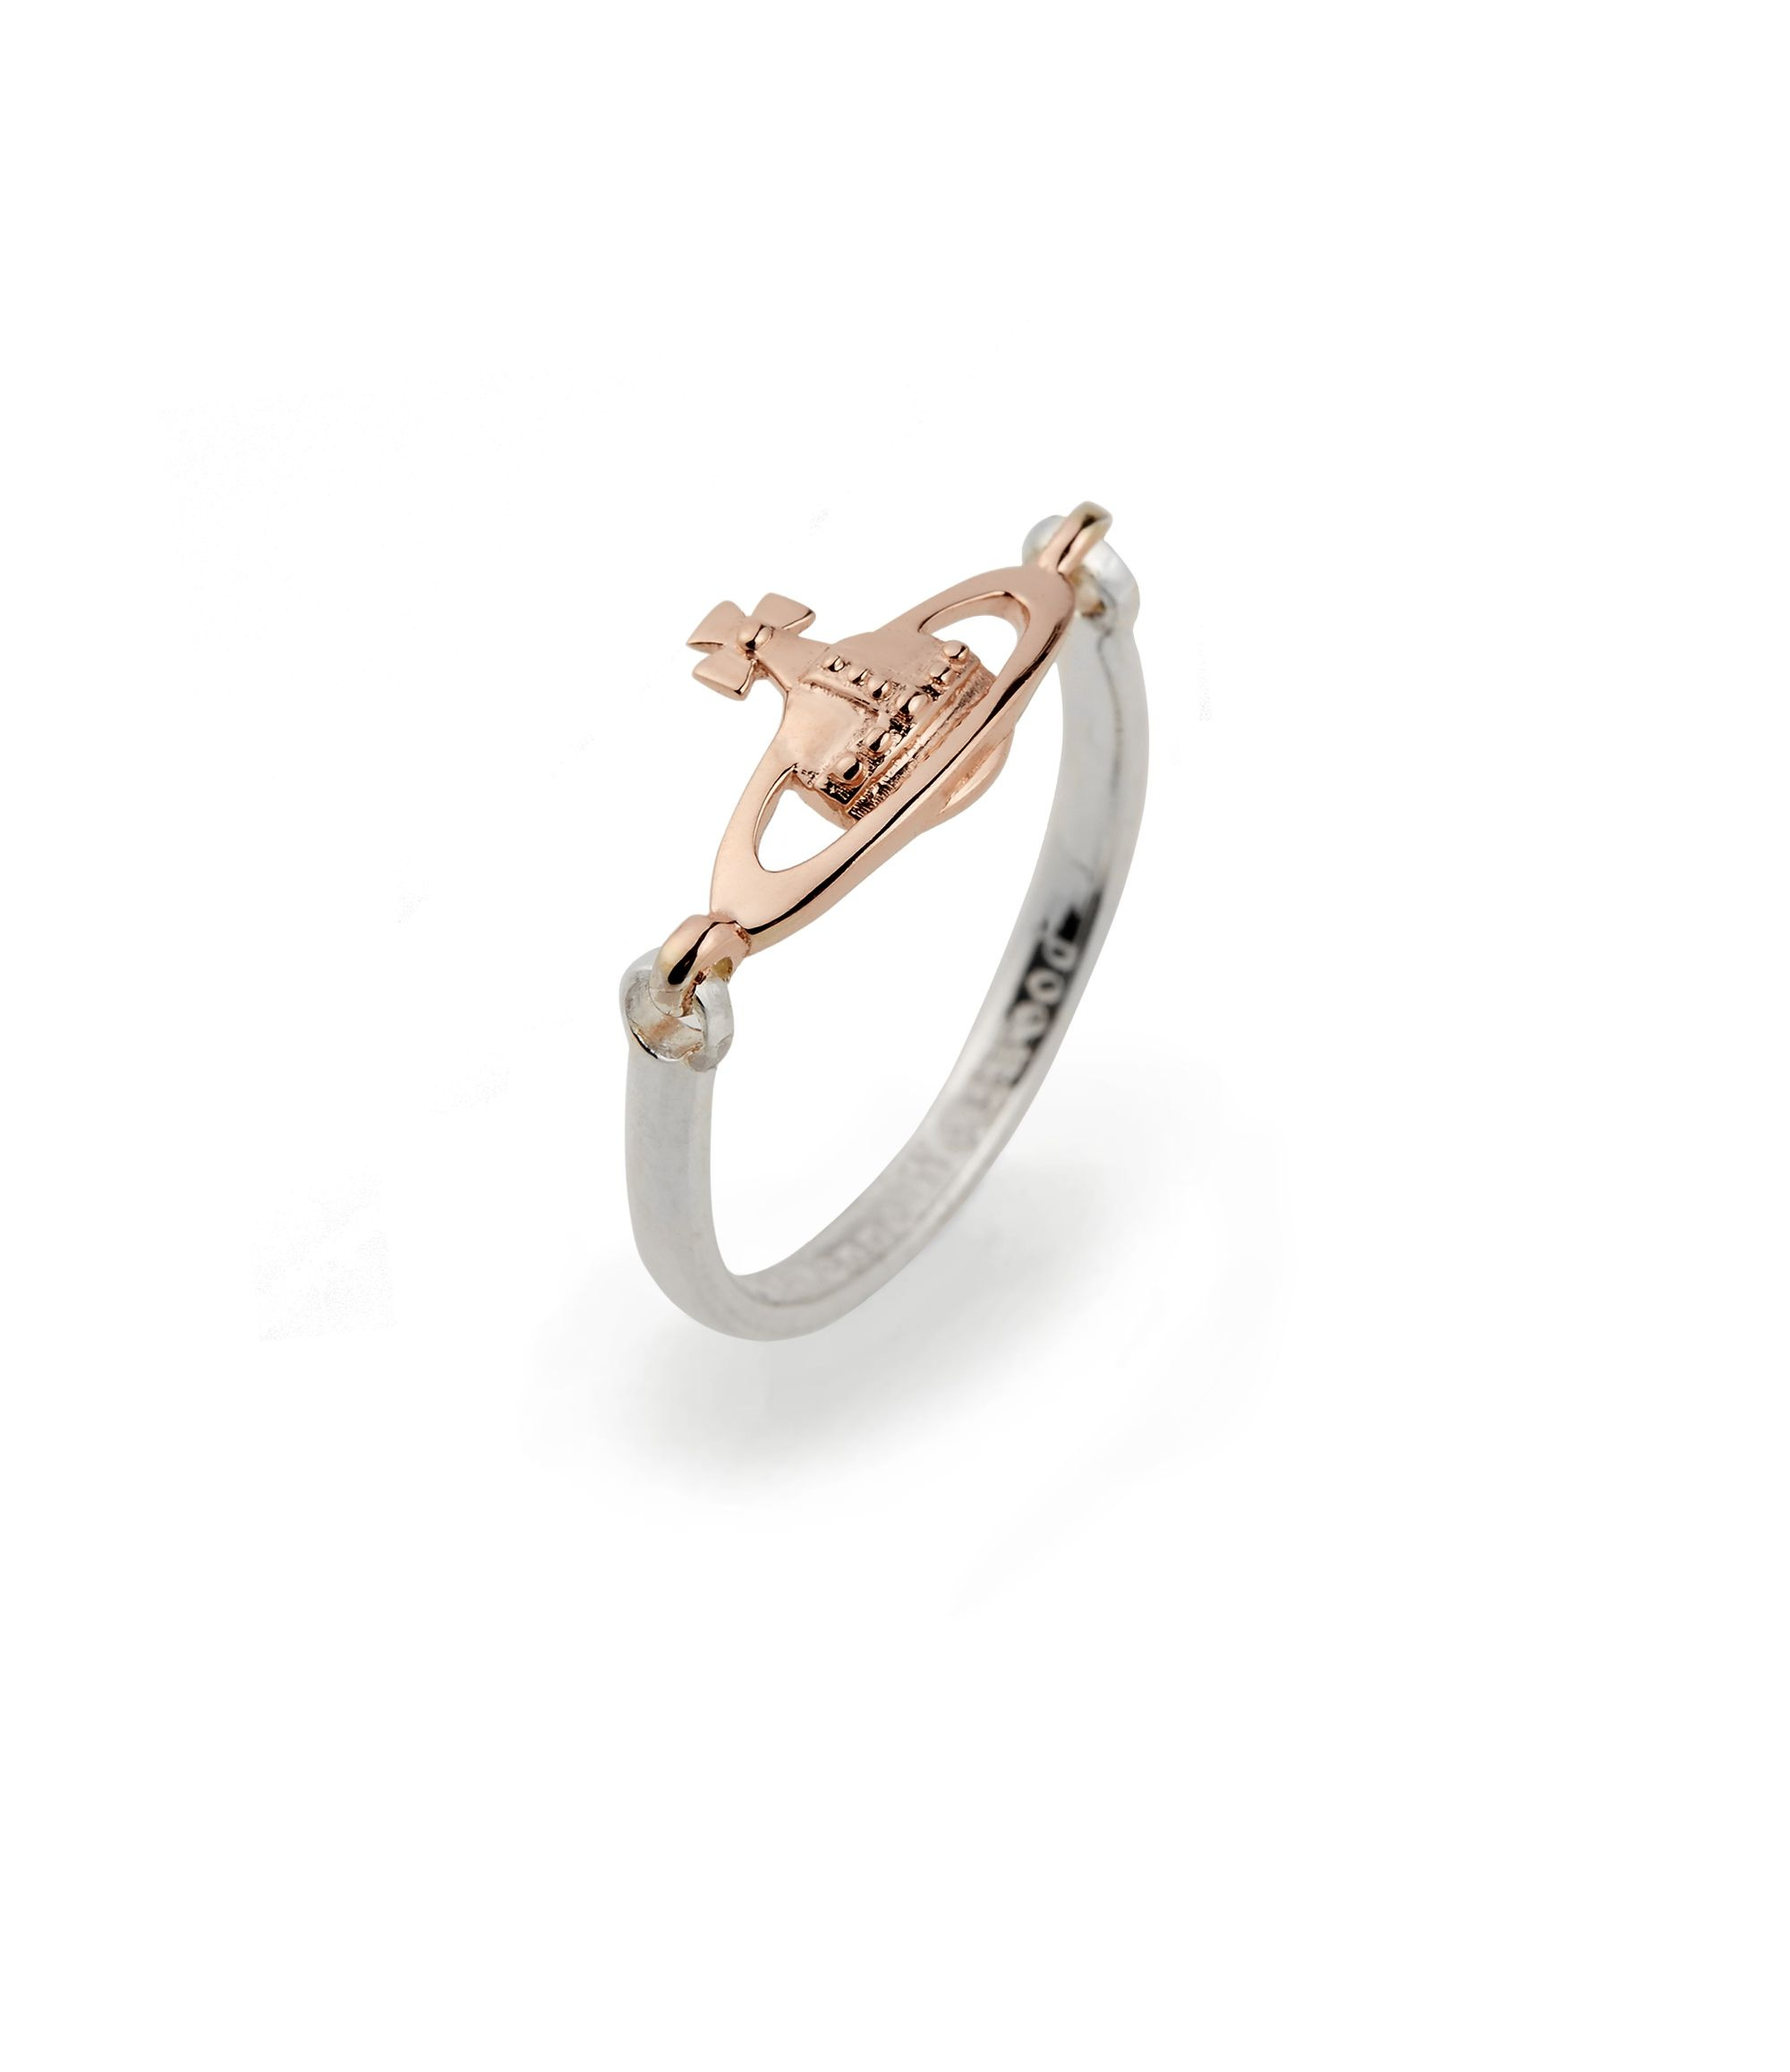 false feel trend gold best crop article british ring subsampling andrew cannel scale pink the is has upscale rose for bridal rings cannele geoghegan a s jeweller flattering vintage engagement twist